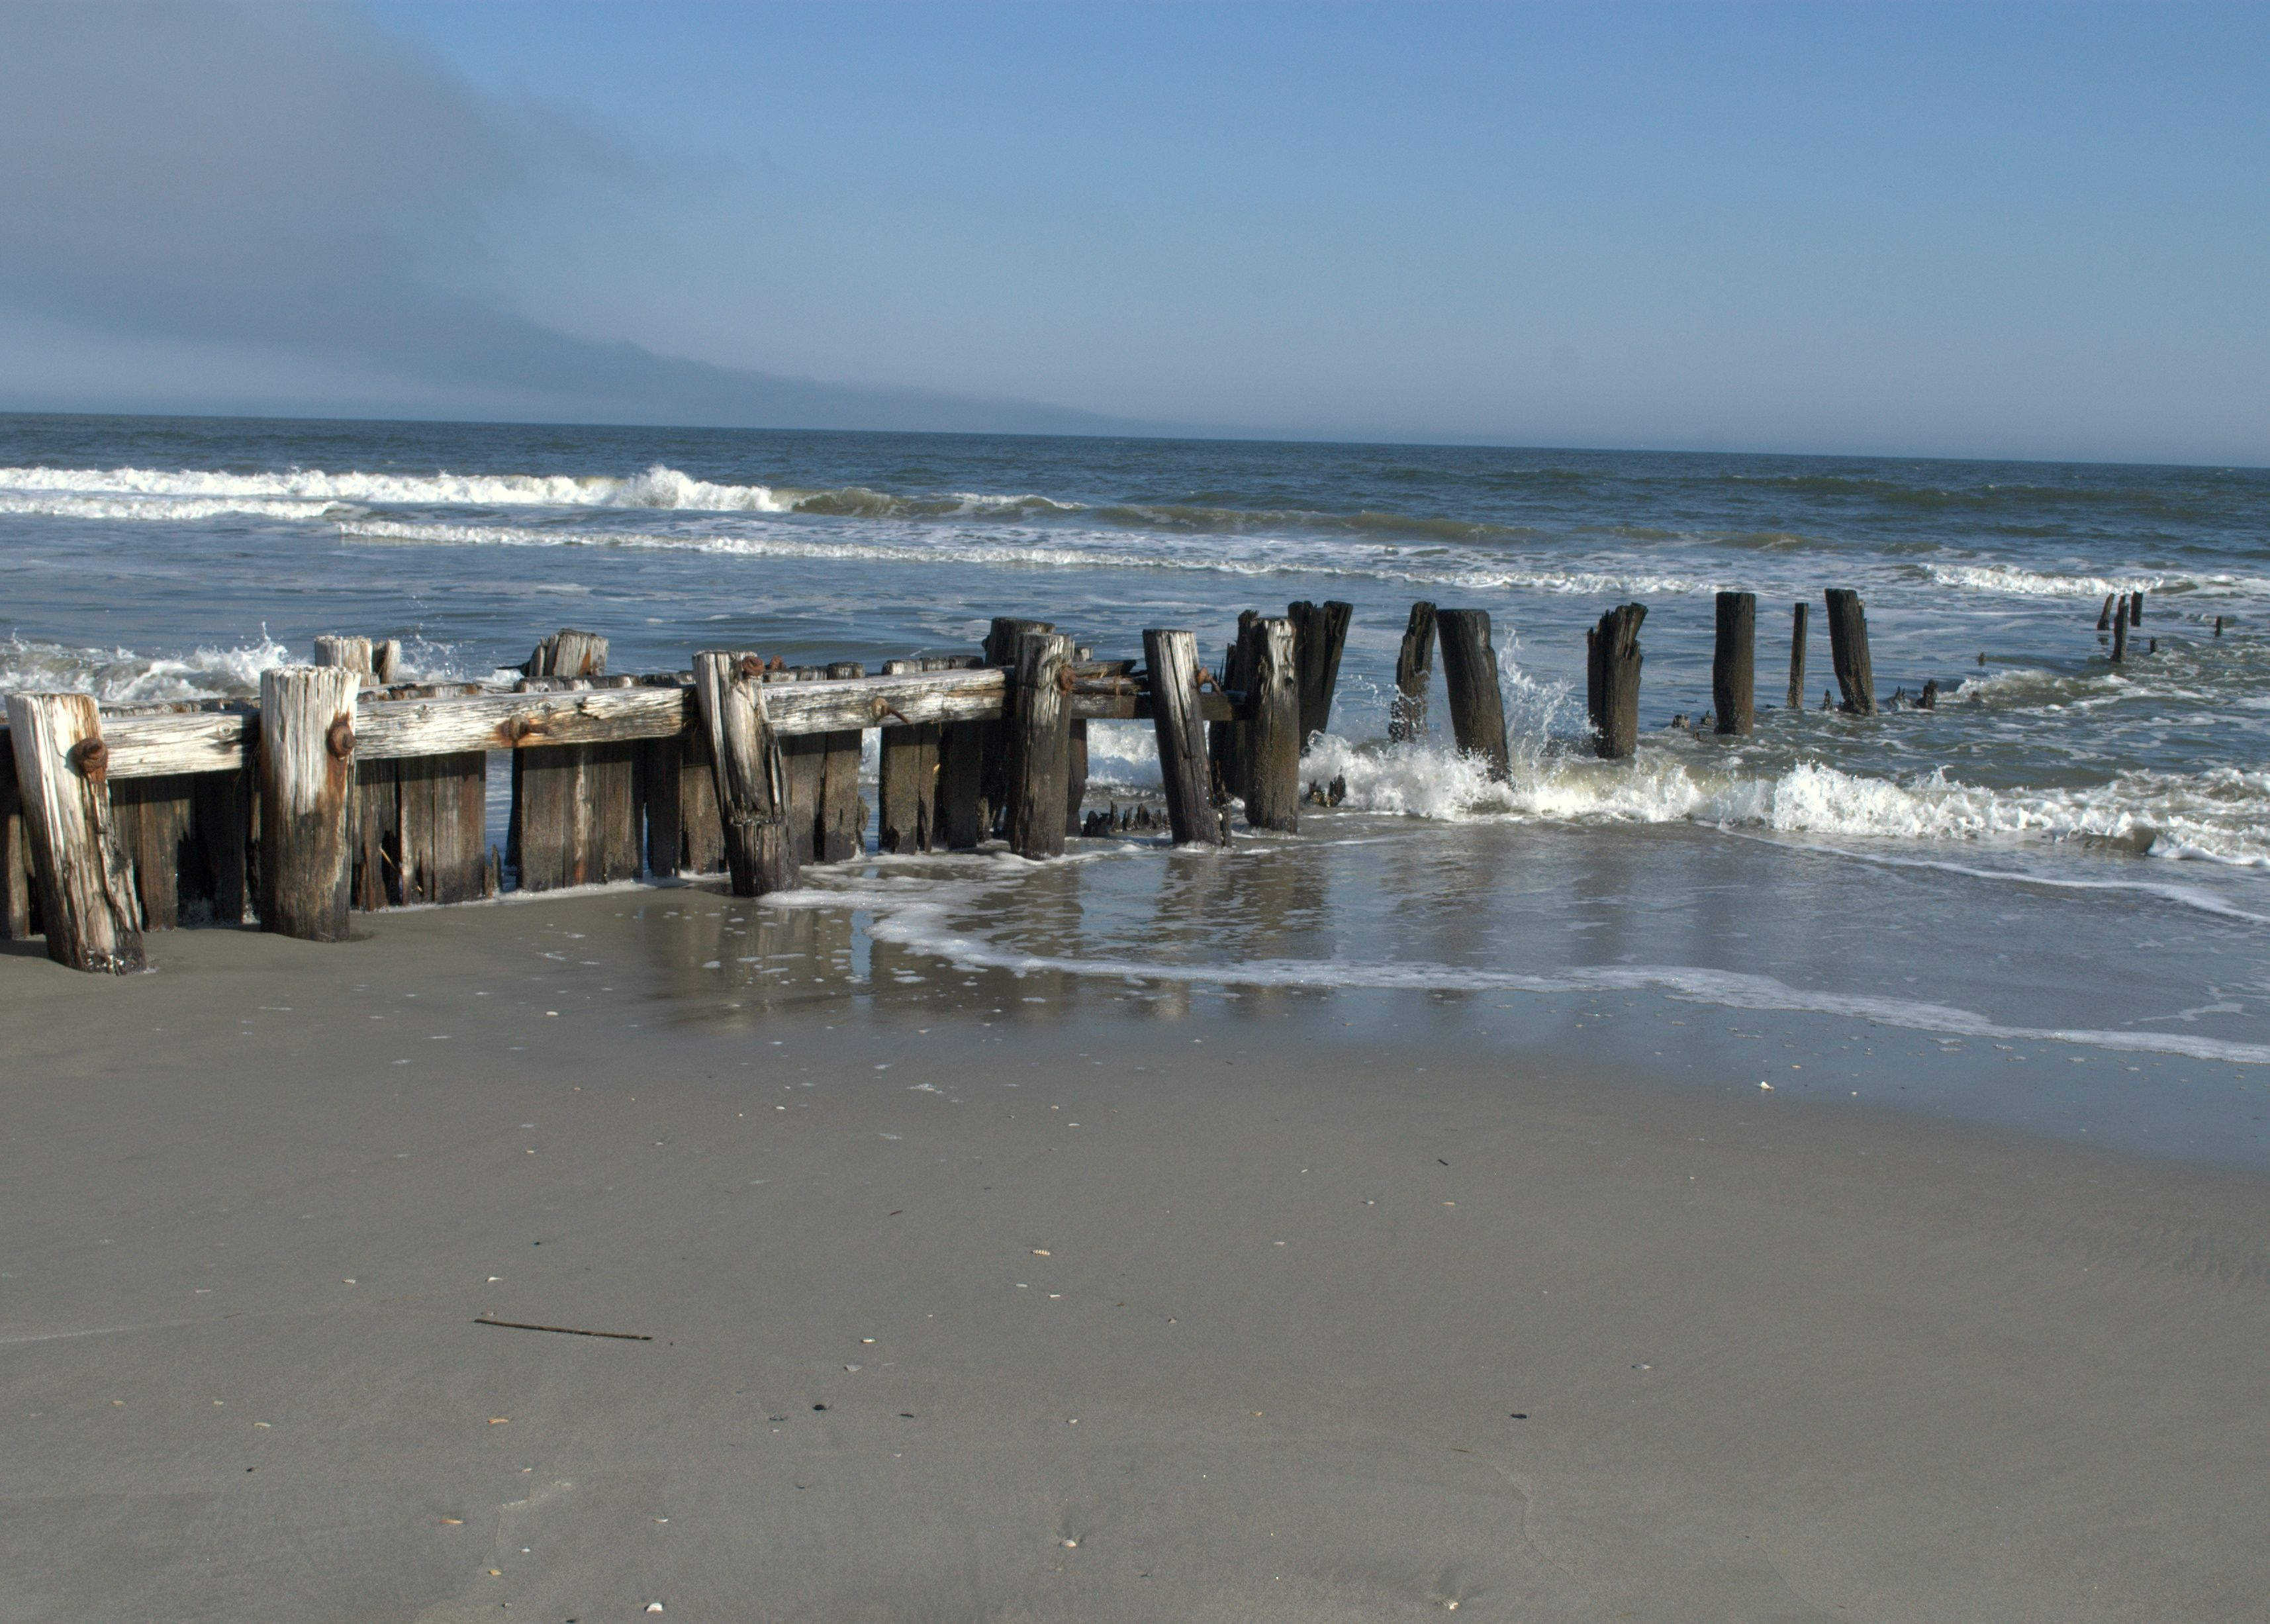 Folly Beach further What Are The Five Best Amenities For Kids At The Sanctuary as well Tami Scott Wedding Folly Beach together with 244730698 as well The Ultimate Restaurant Guide To Folly Beach South Carolina. on beaches at charleston south carolina